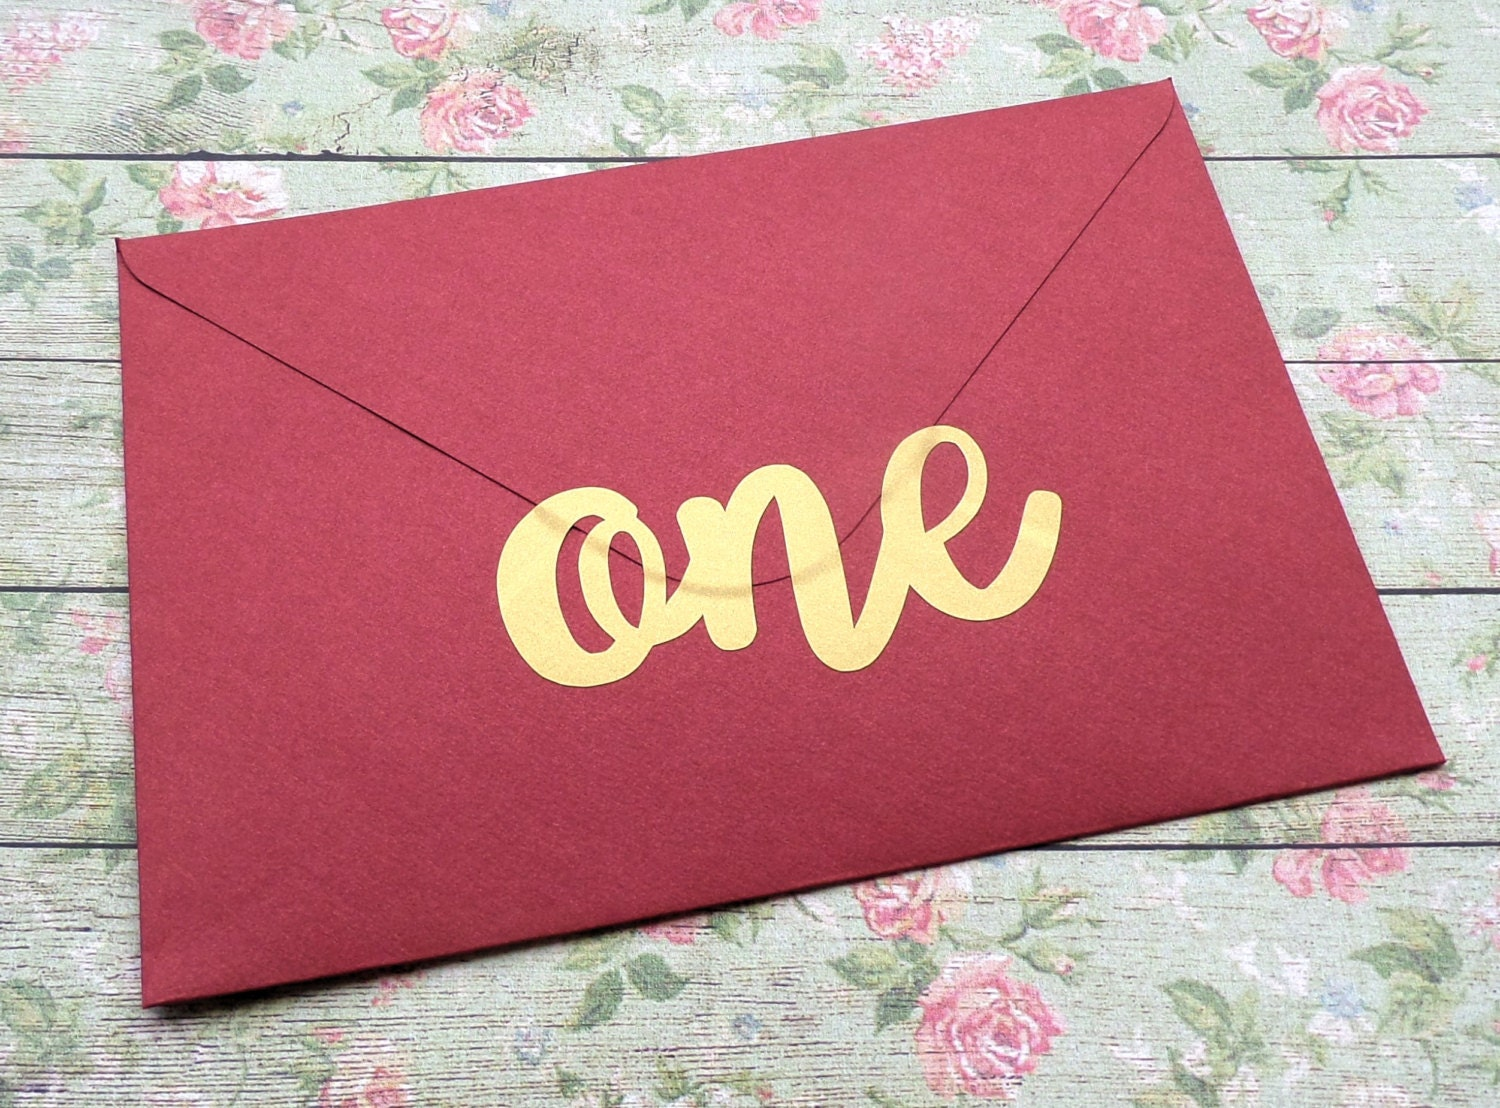 15 ONE stickers 1st birthday invitation seal gold envelope